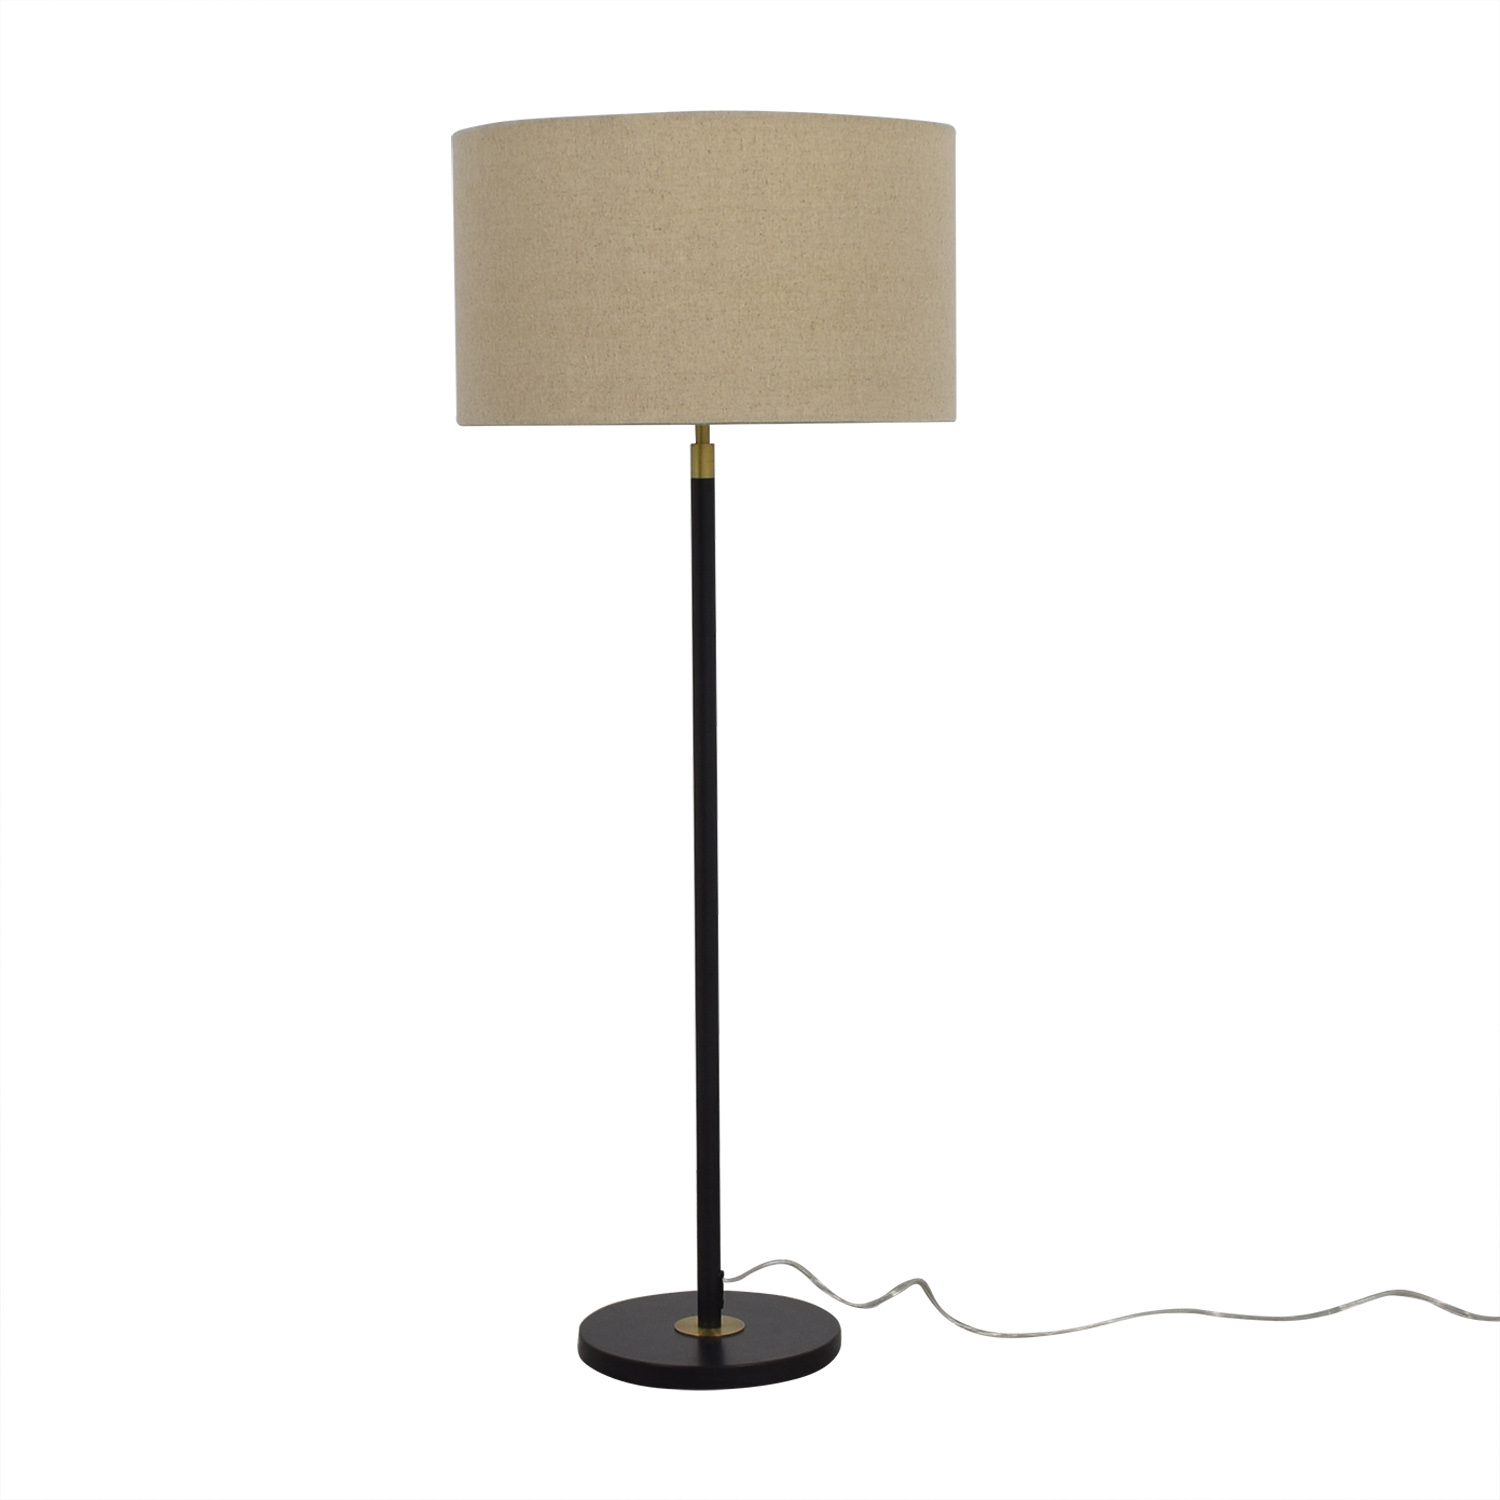 West Elm West Elm Telescoping Floor Lamp nj